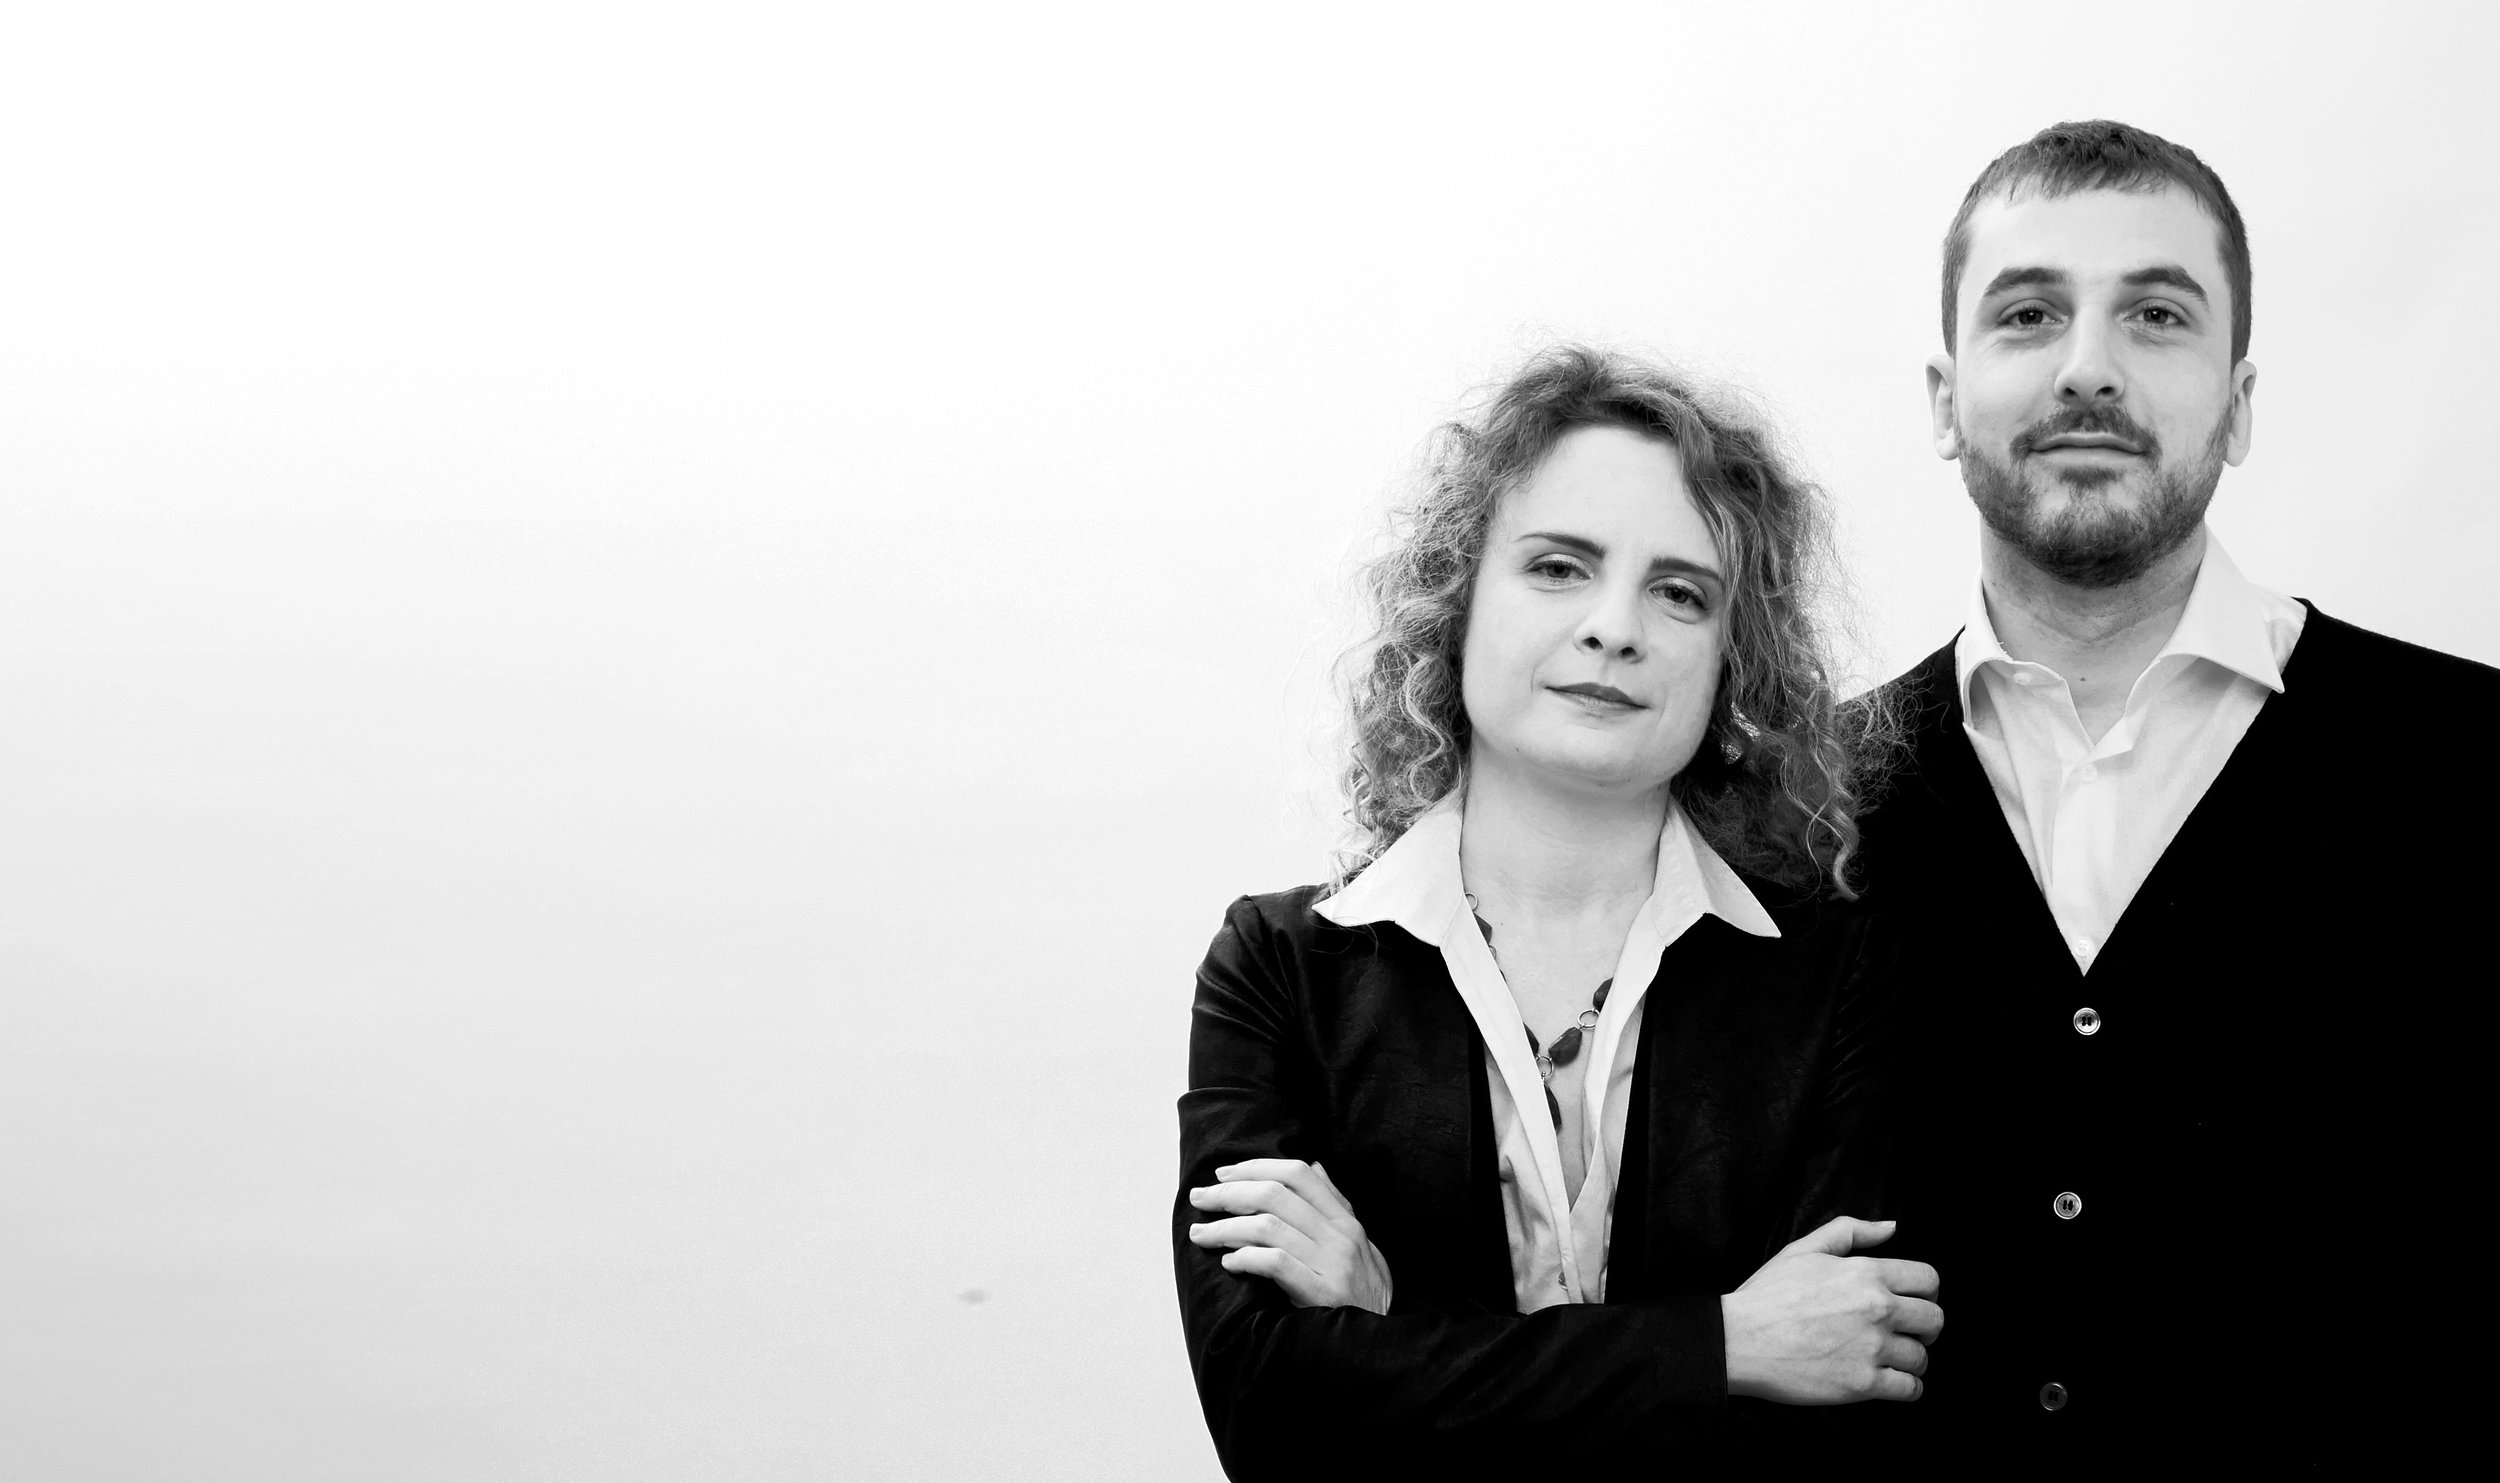 Chiara and her co-founder Claudio.